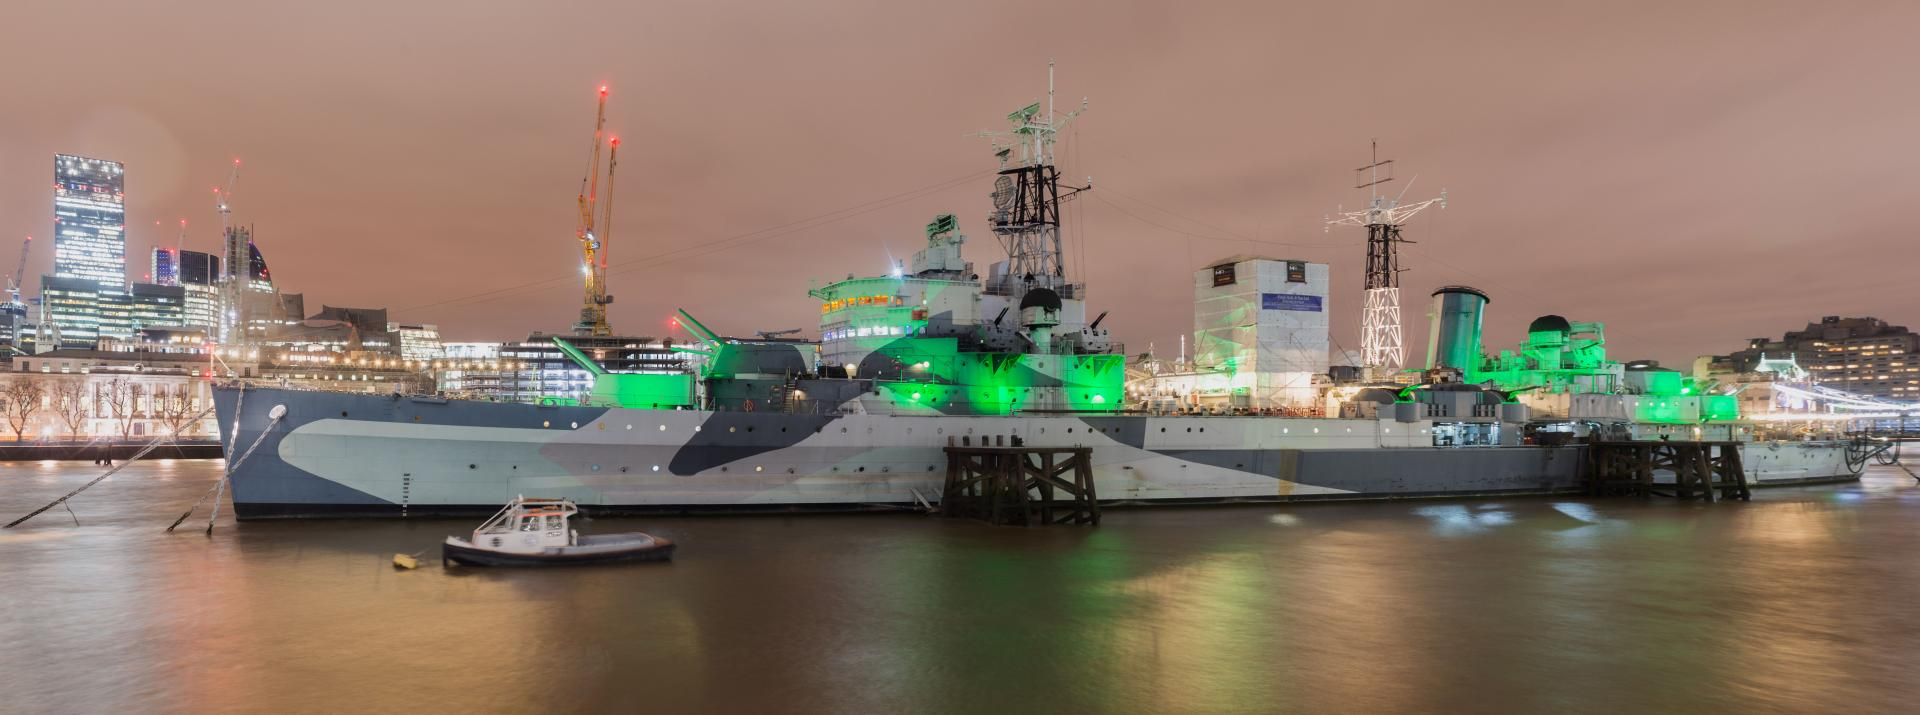 WEB-2-General-View-of-HMS-Belfast-Lit-up